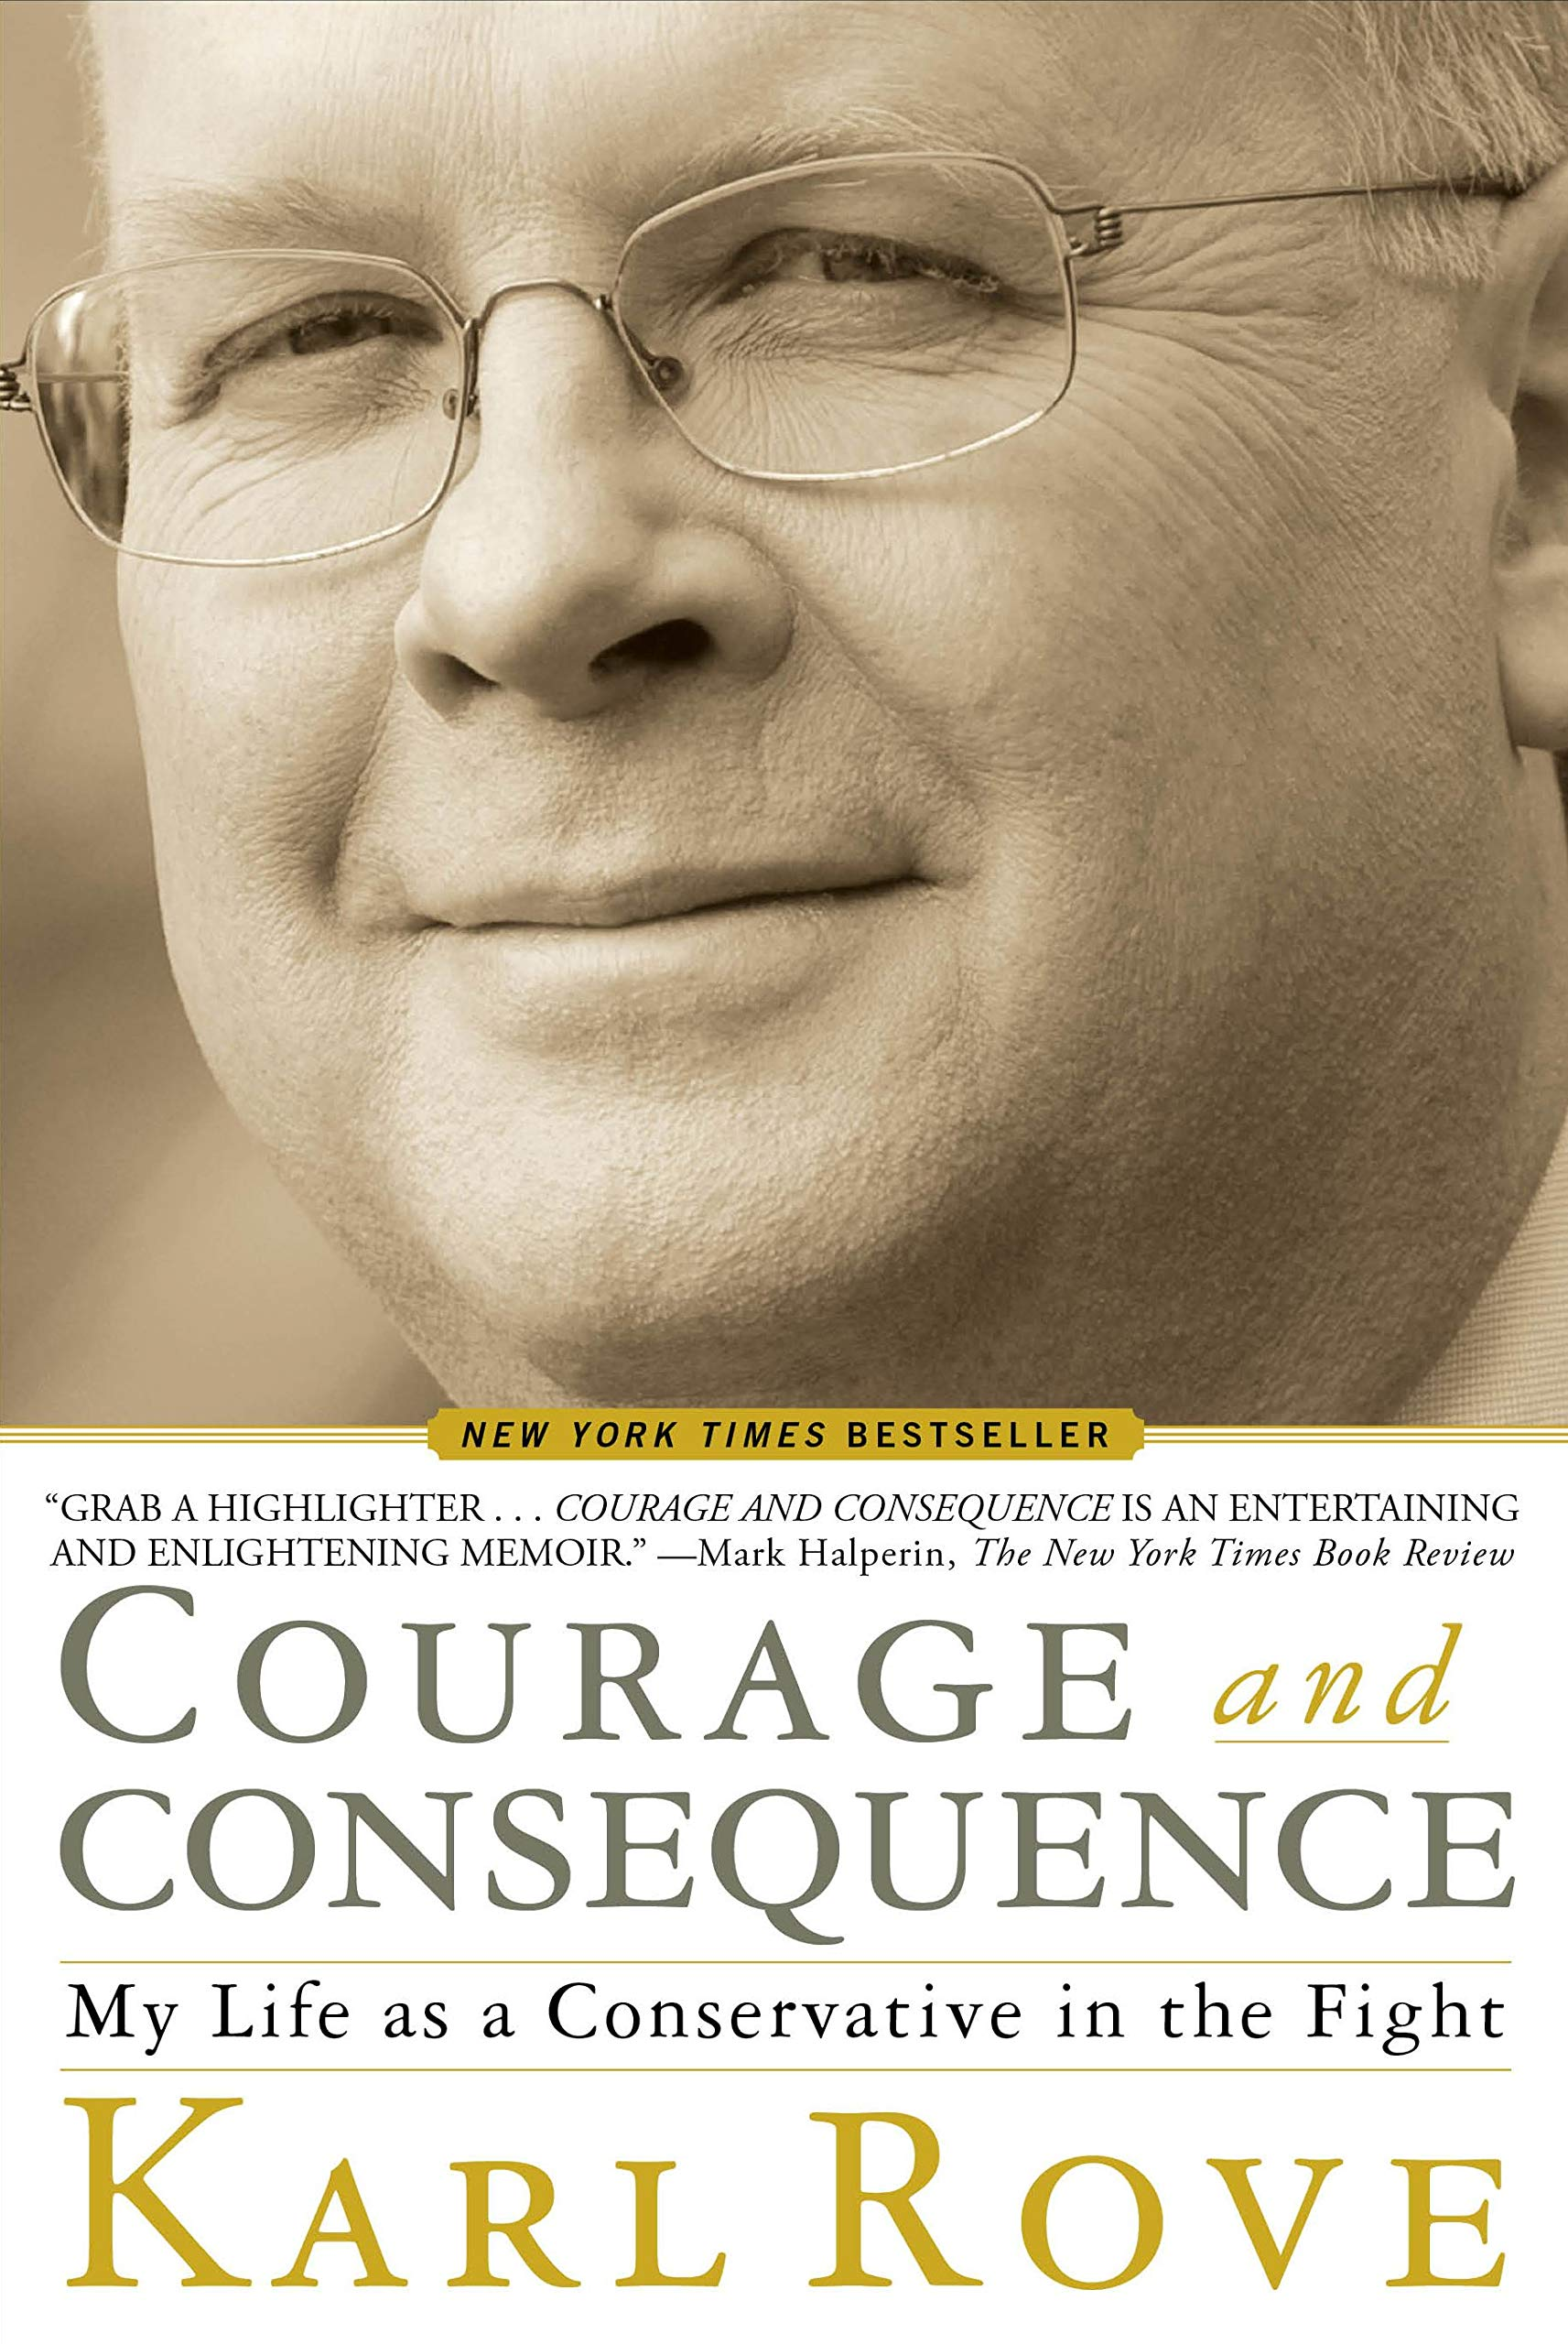 Courage and Consequence: My Life as a Conservative in the Fight: Karl Rove:  9781439191057: Amazon.com: Books